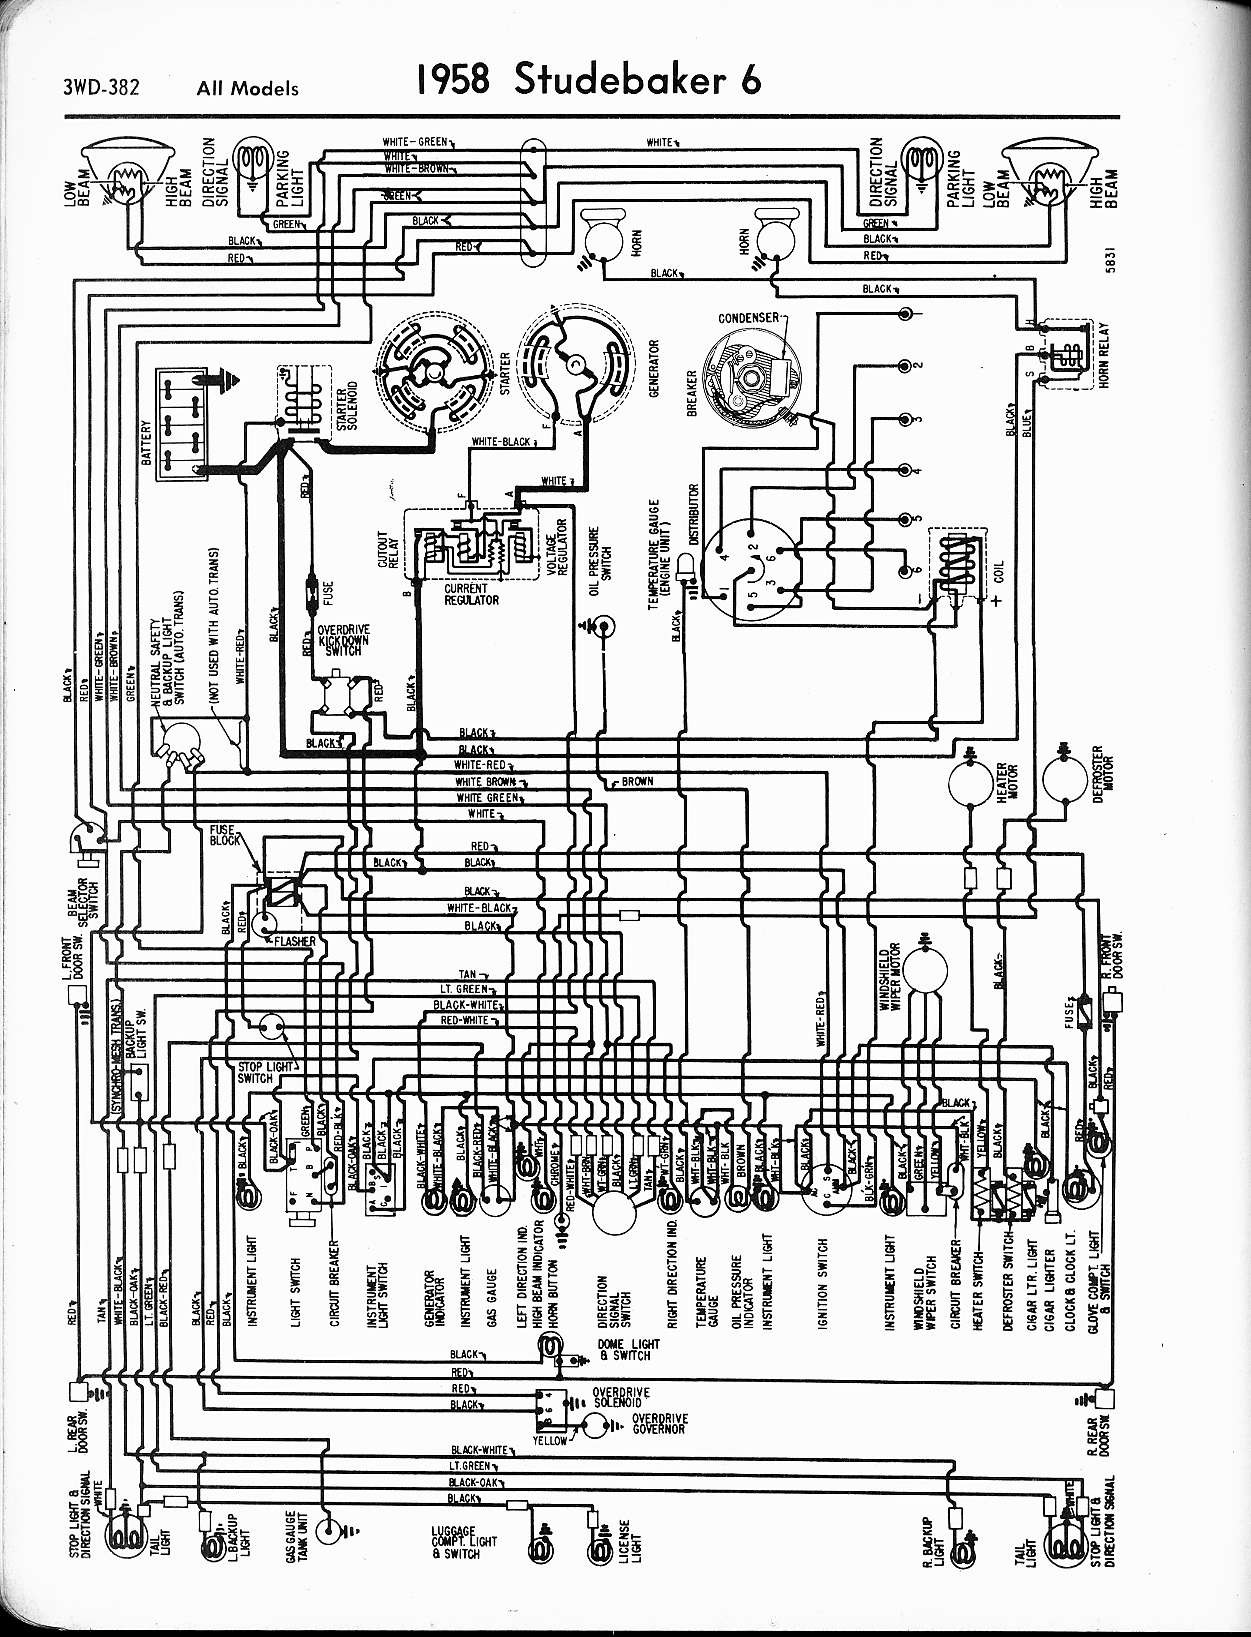 hight resolution of wiring diagrams studebaker wiring diagrams studebaker wiring 1950 studebaker champion wiring diagrams 6